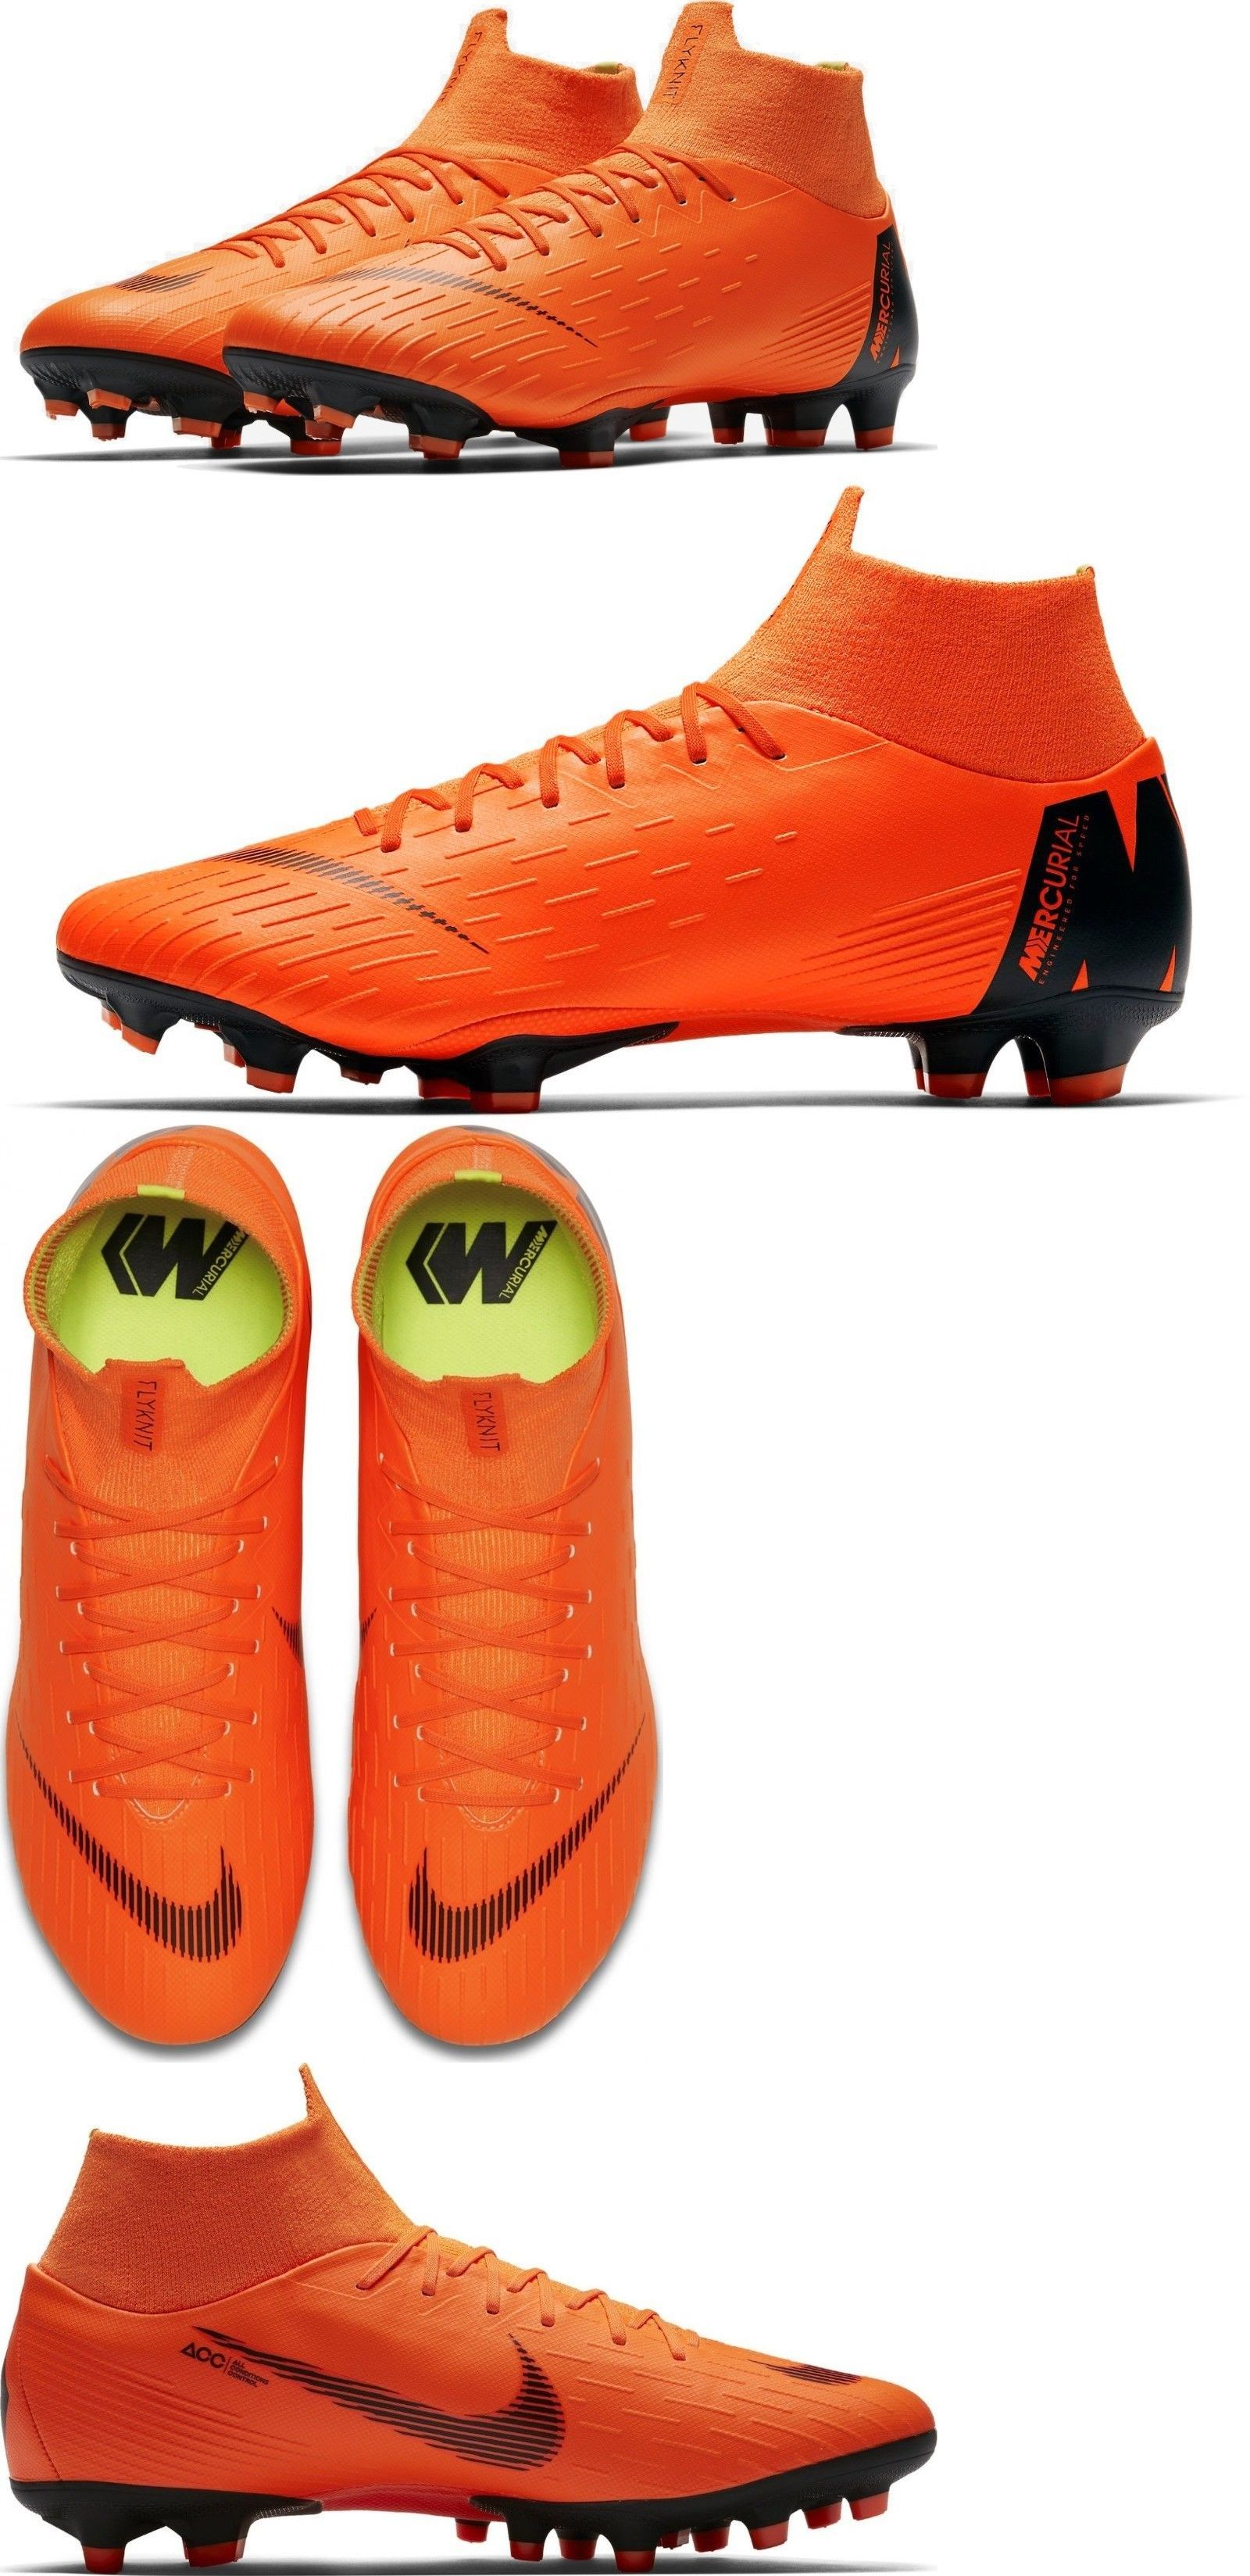 new arrival 18fcb 1ae75 Clothing Shoes and Accessories 159178  Nike Mercurial Superfly 6 Pro Fg  Orange Soccer Cleat Men S 7.5 Ah7368-107 -  BUY IT NOW ONLY   74.99 on eBay!